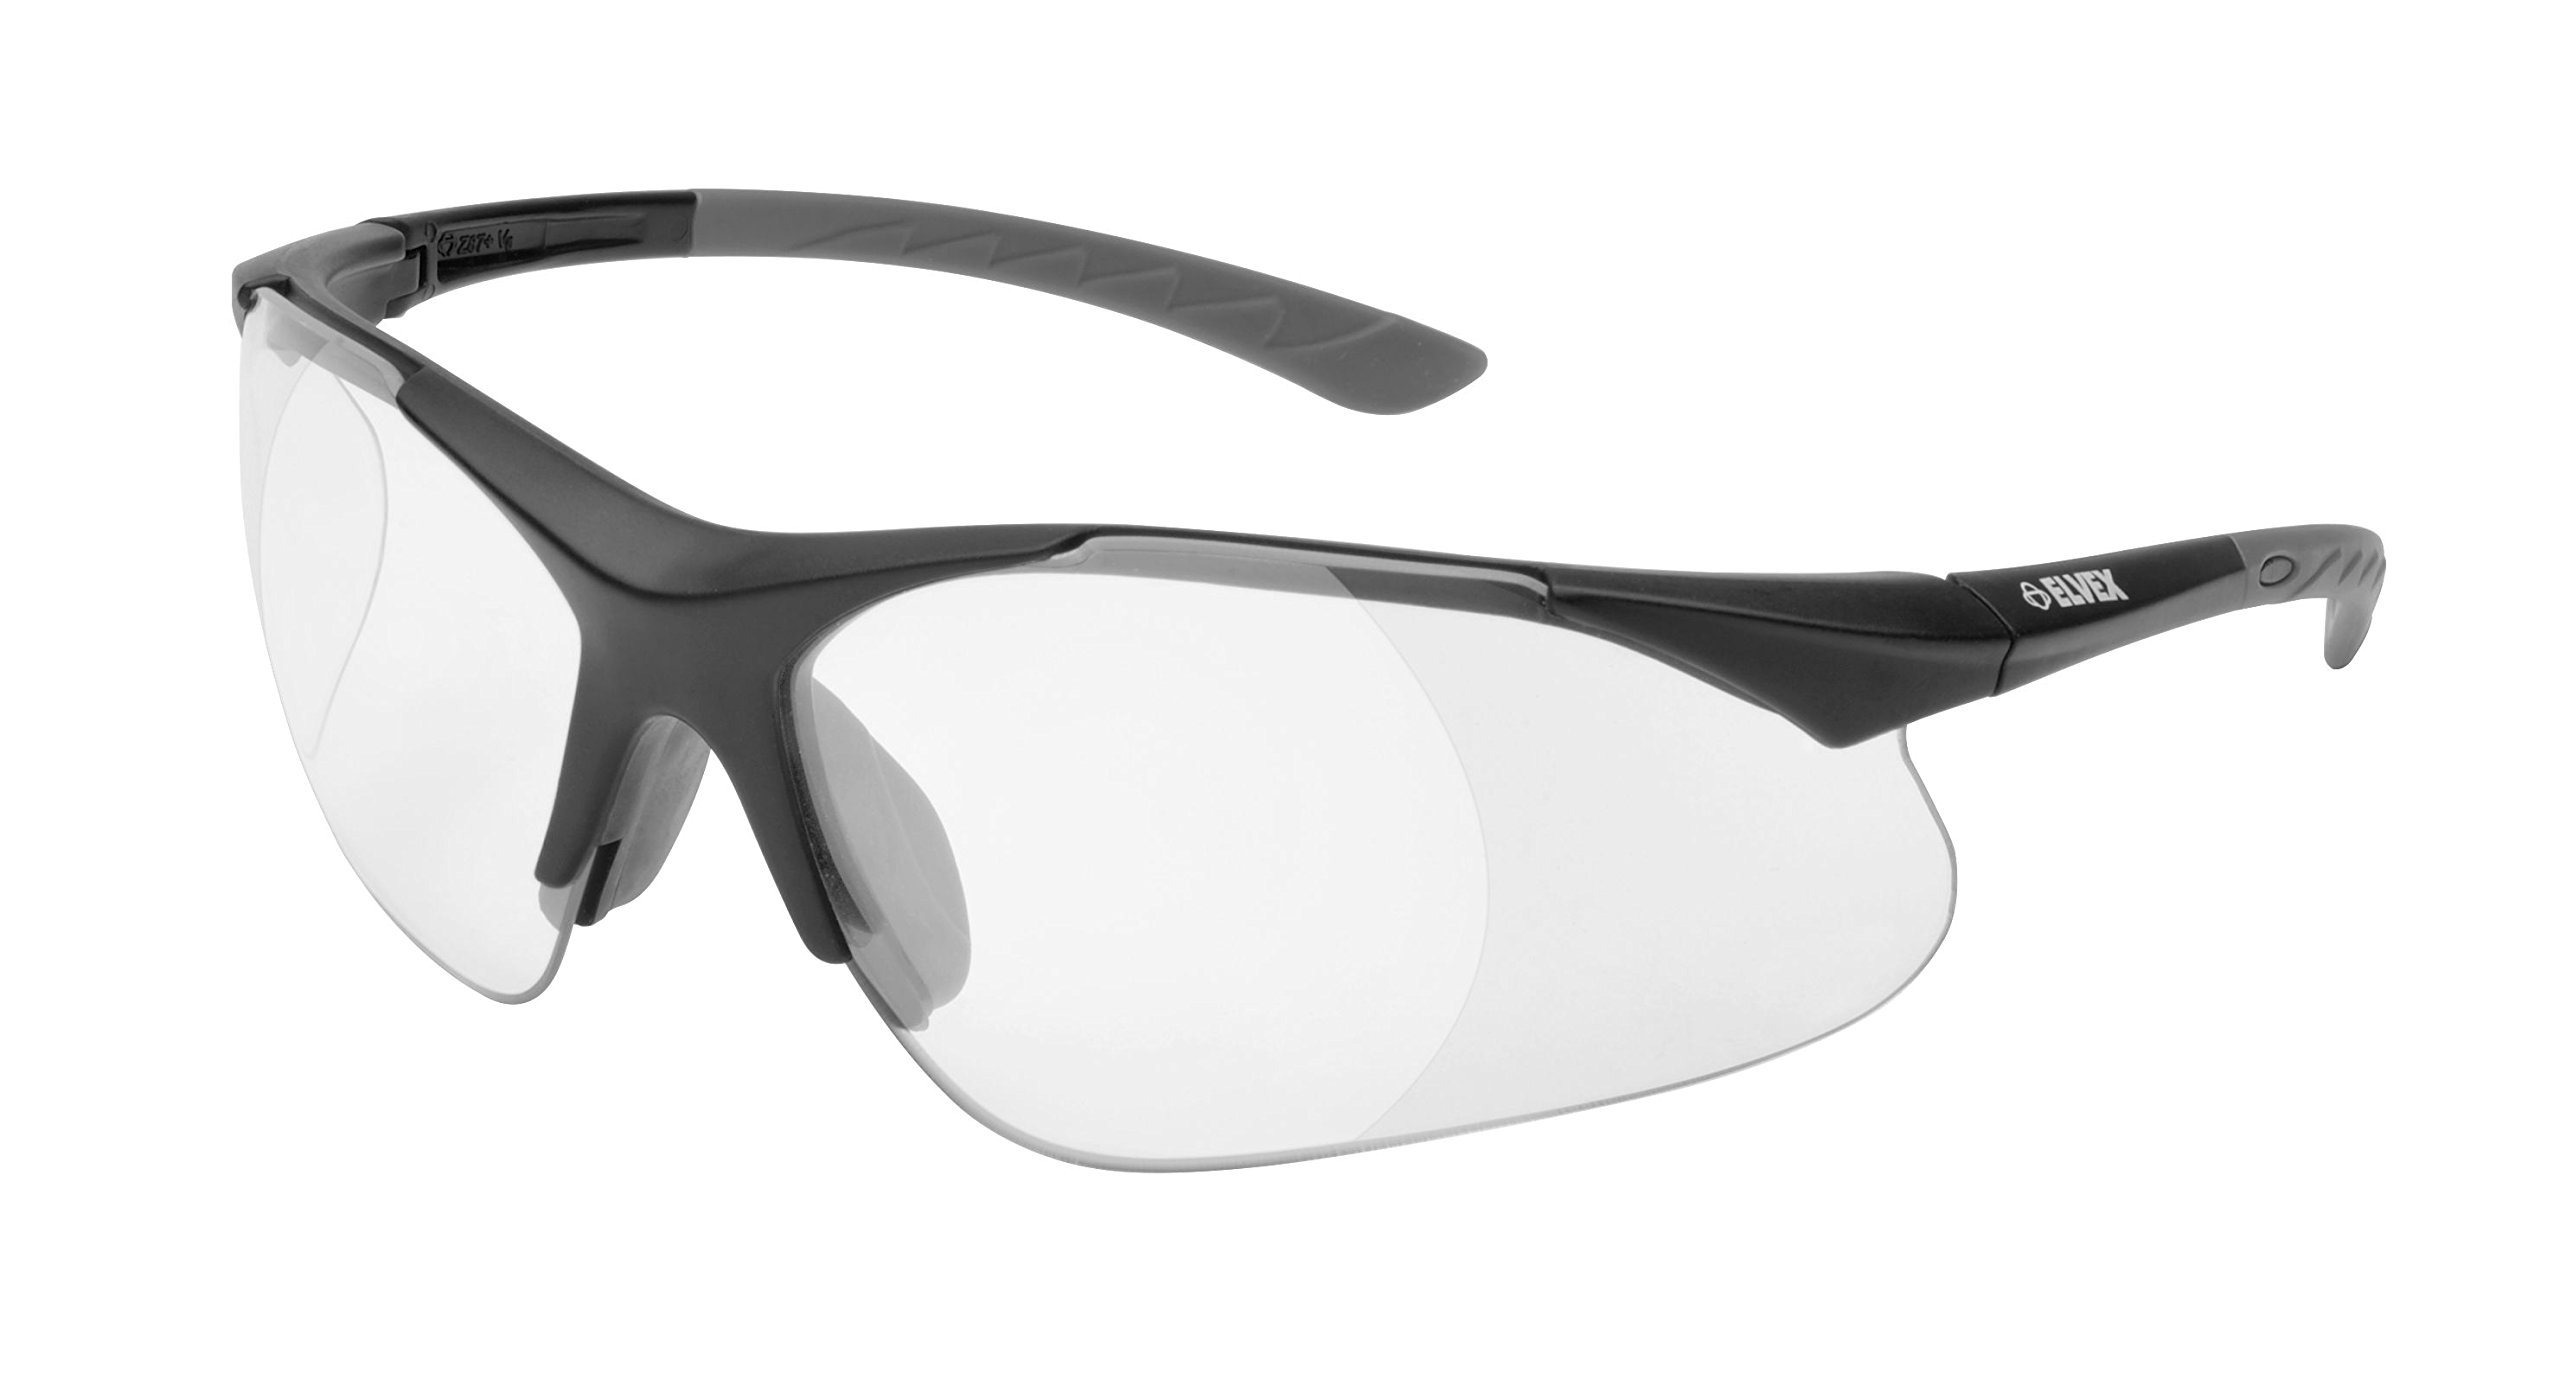 35fa843584b Amazon.com  Elvex RX-500C 0.5 Diopter Full Lens Magnifier Safety Glasses